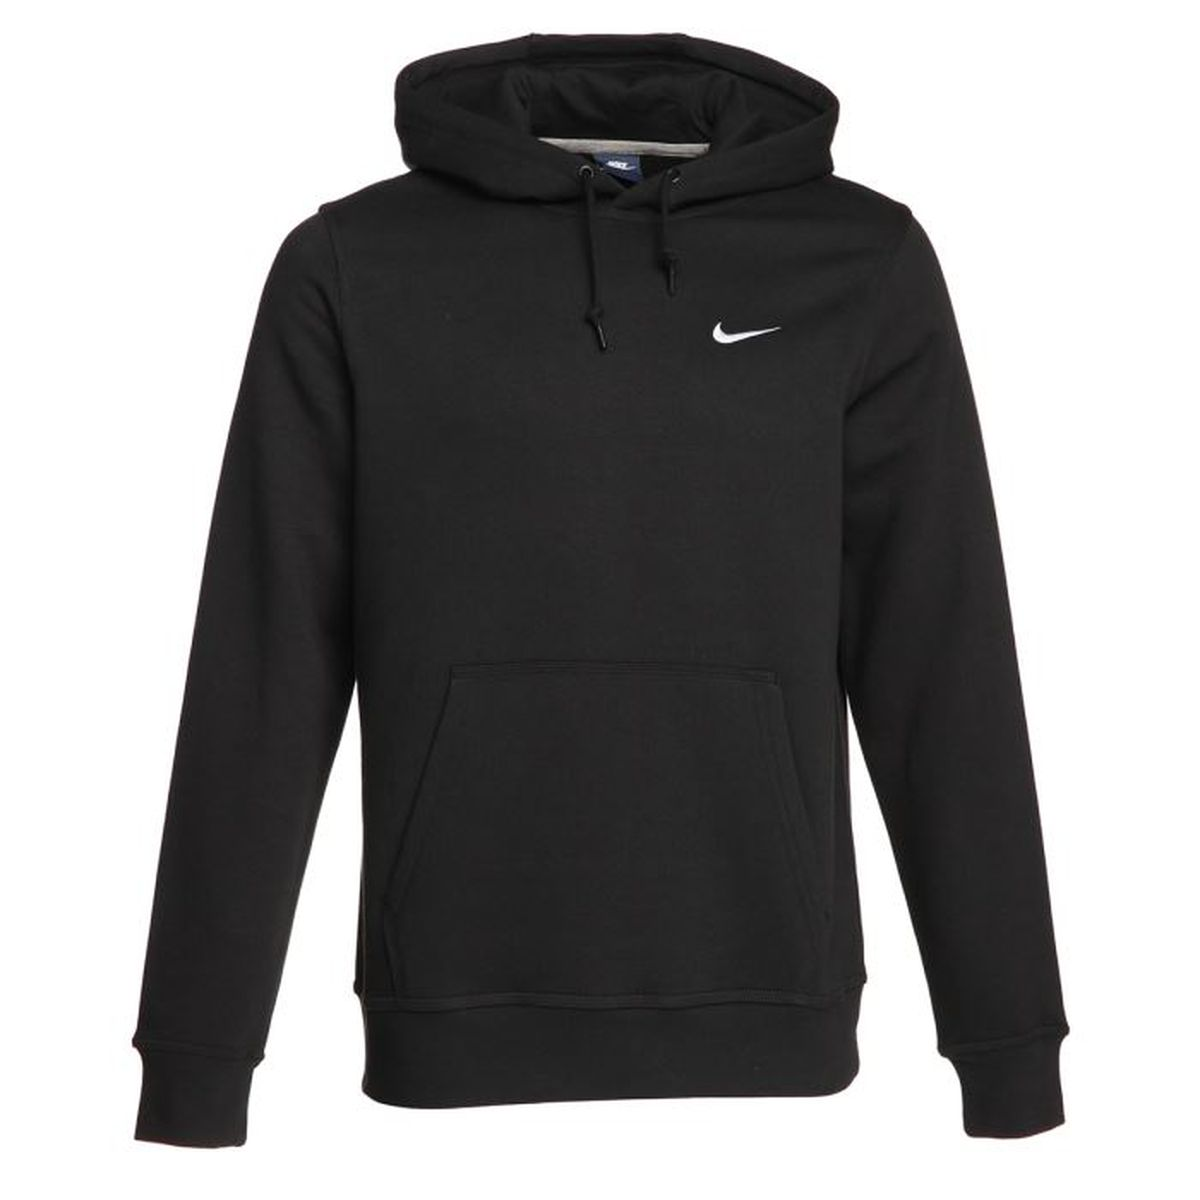 nike sweat capuche homme noir achat vente sweatshirt cdiscount. Black Bedroom Furniture Sets. Home Design Ideas